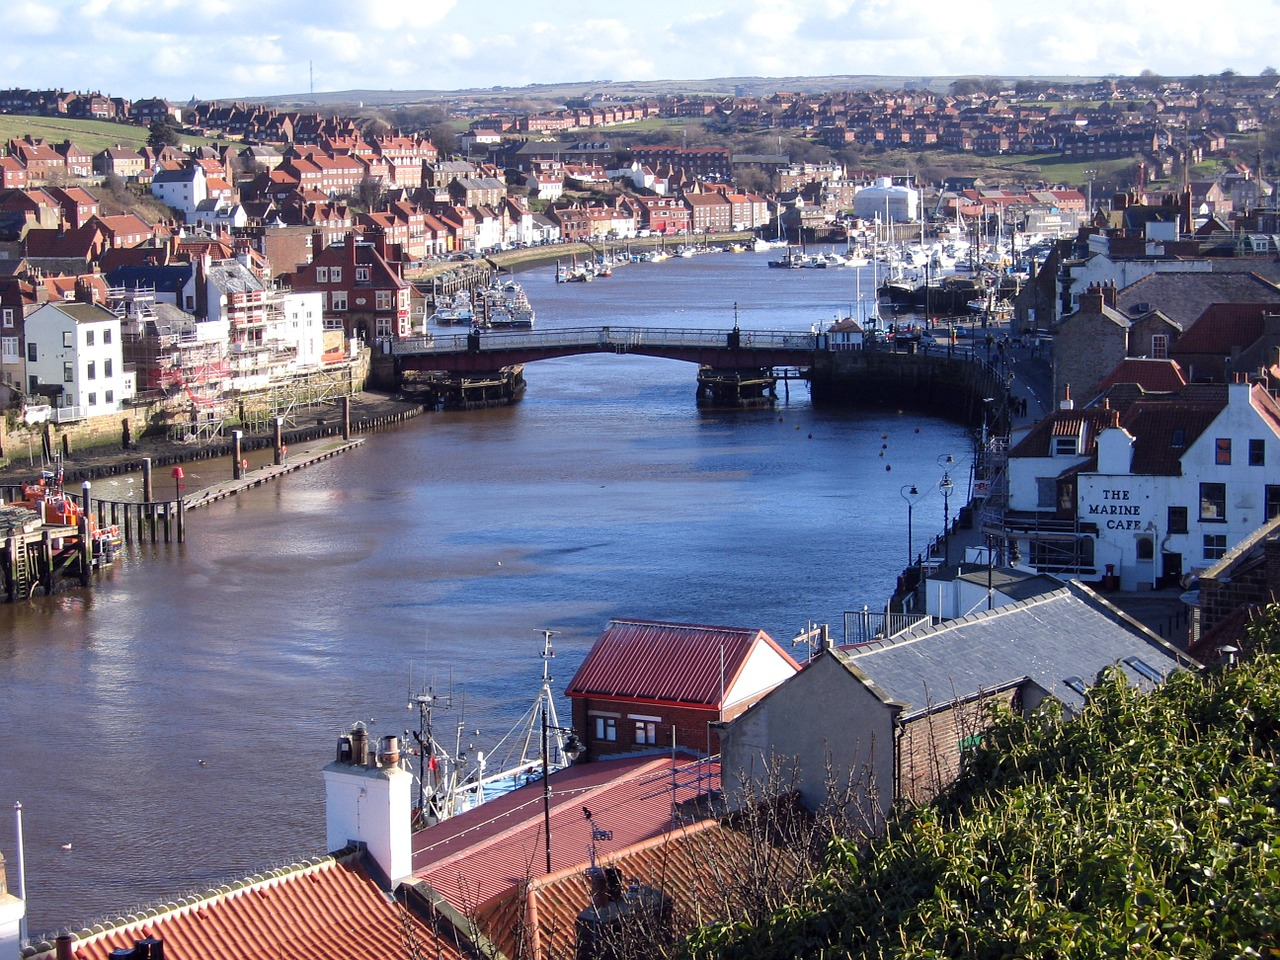 North-Yorkshire Whitby Harbour by Postbyte on Pixabay